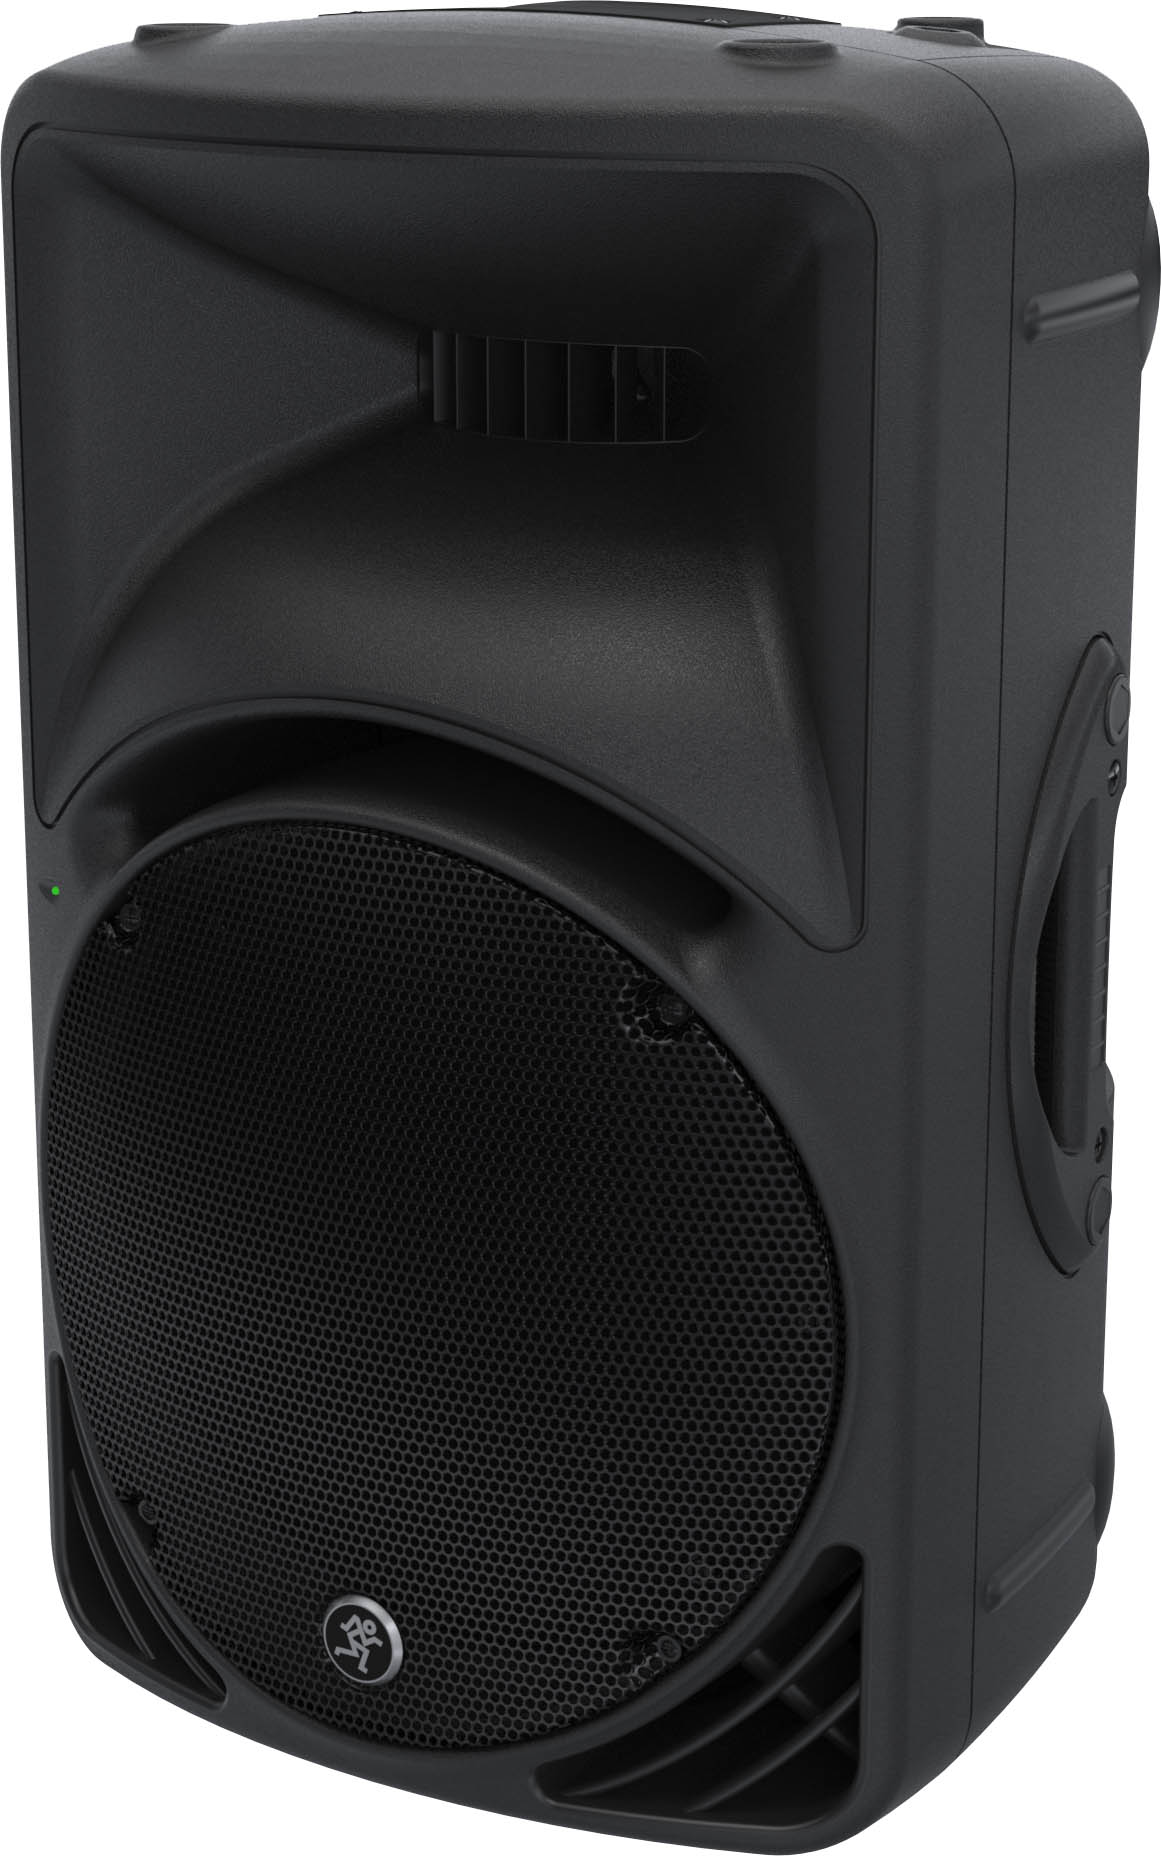 Speaker Equipment Mackie Srm450v3 1000w 12in Powered Speaker Srm450v3 Avshop Ca